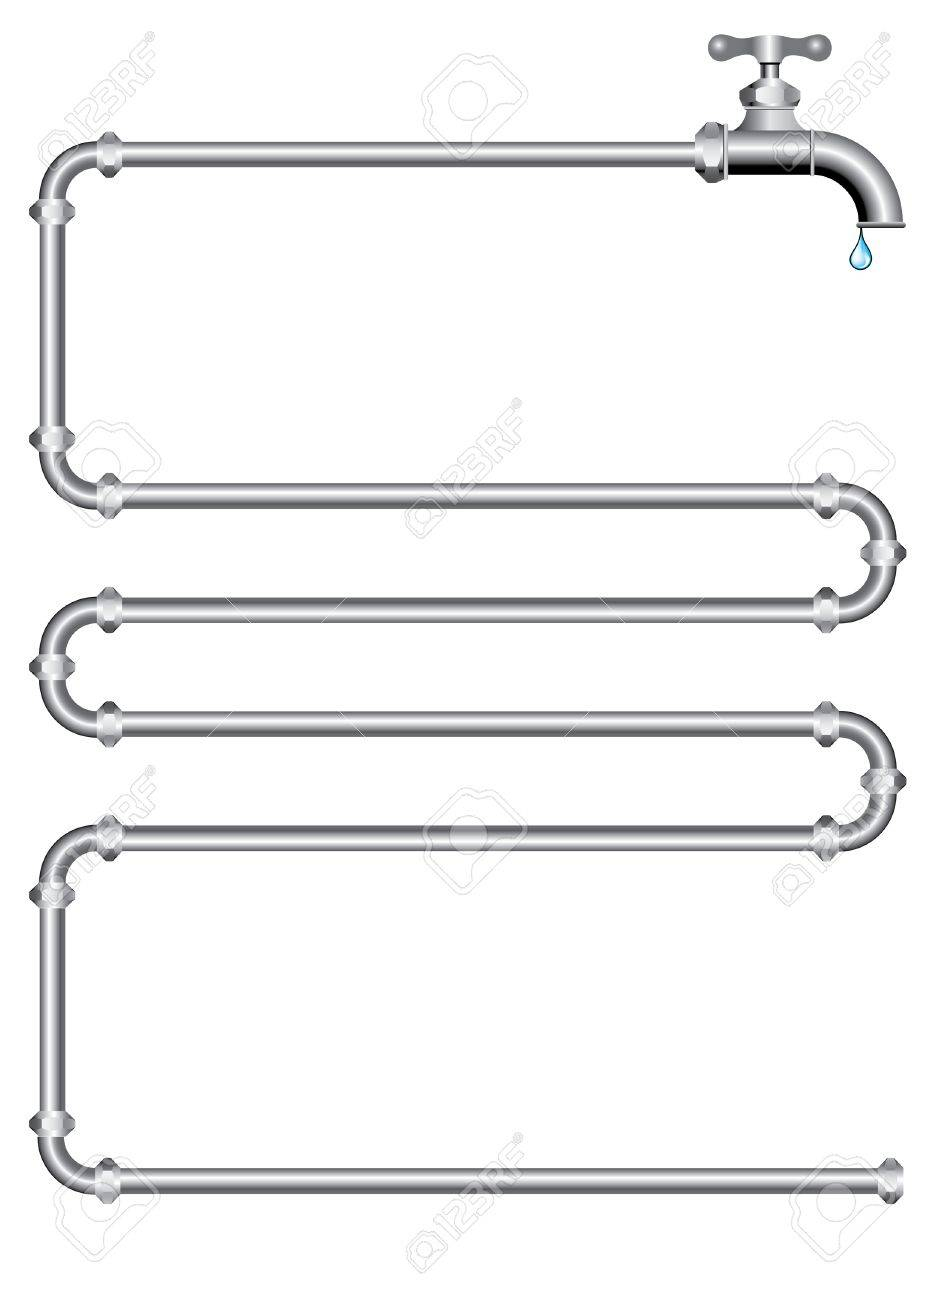 vector illustration with pipes and faucet Stock Vector - 5031452